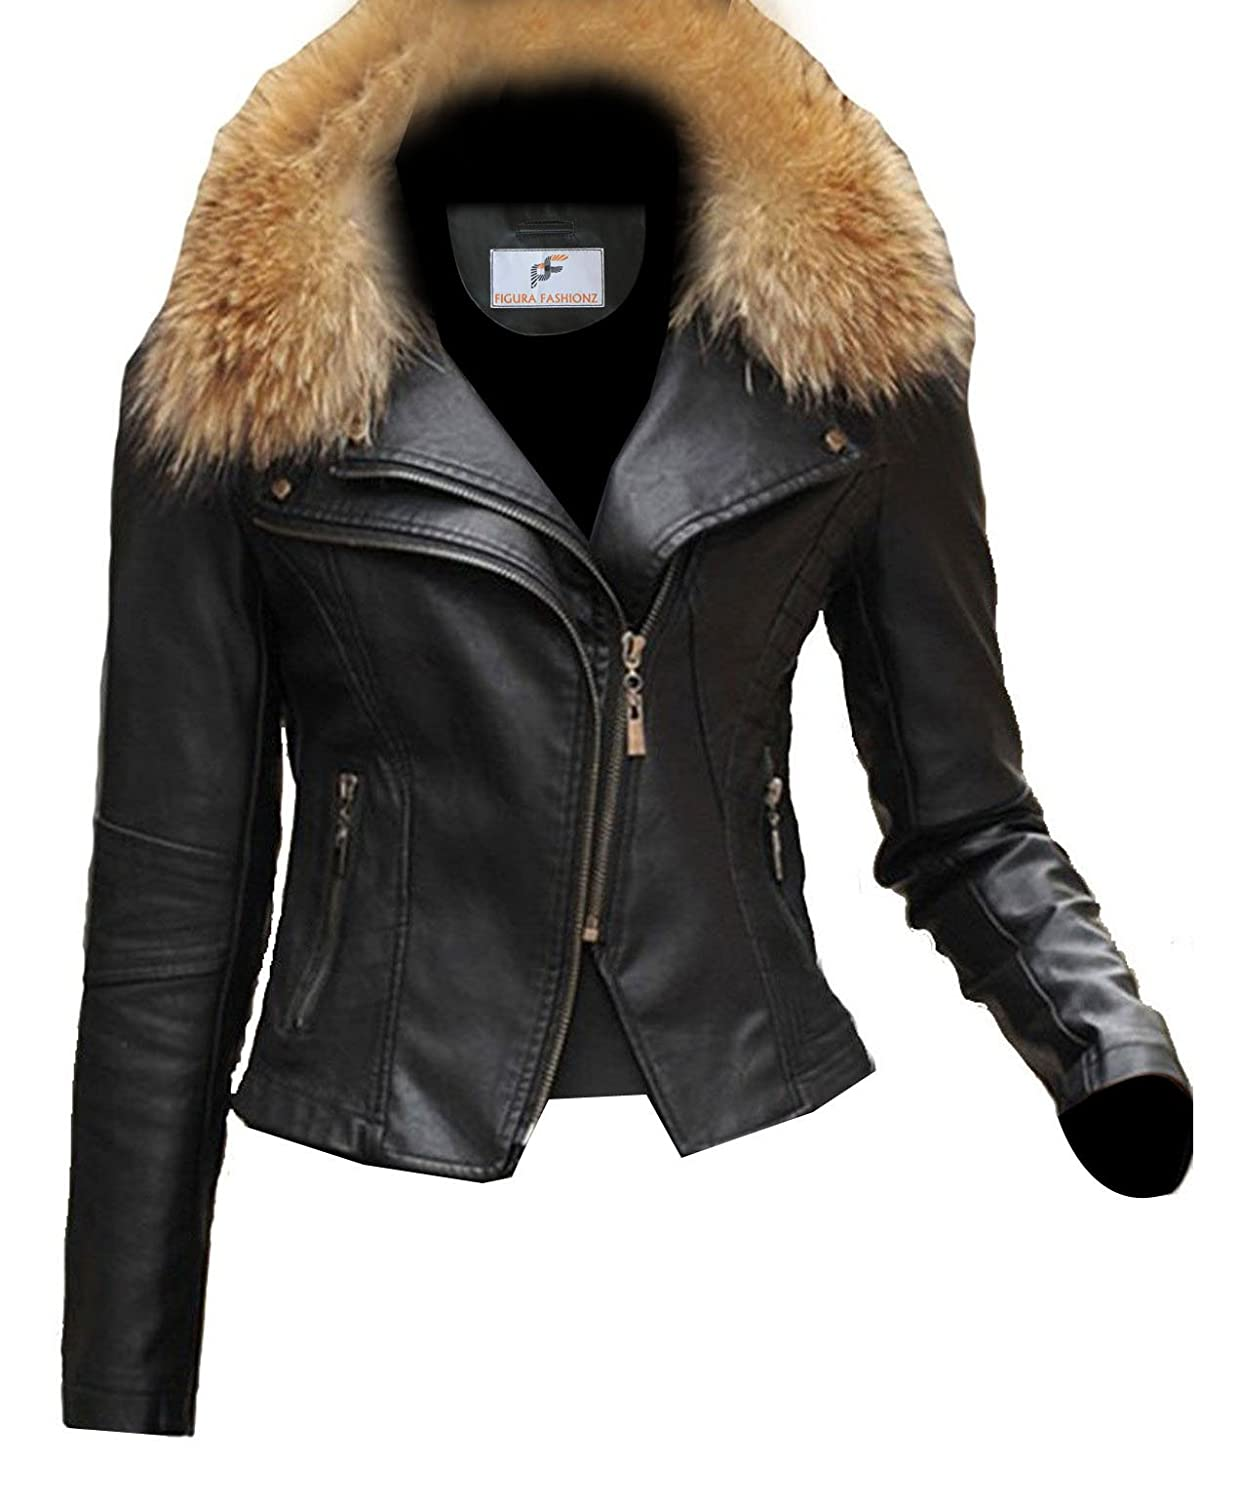 abb2978b6e3 100% Pure Sheep Lambskin Leather Made in USA or Imported Dry Clean Only  FREE Bespoke Custom   Tailor made or standard USA European size Leather  Jackets